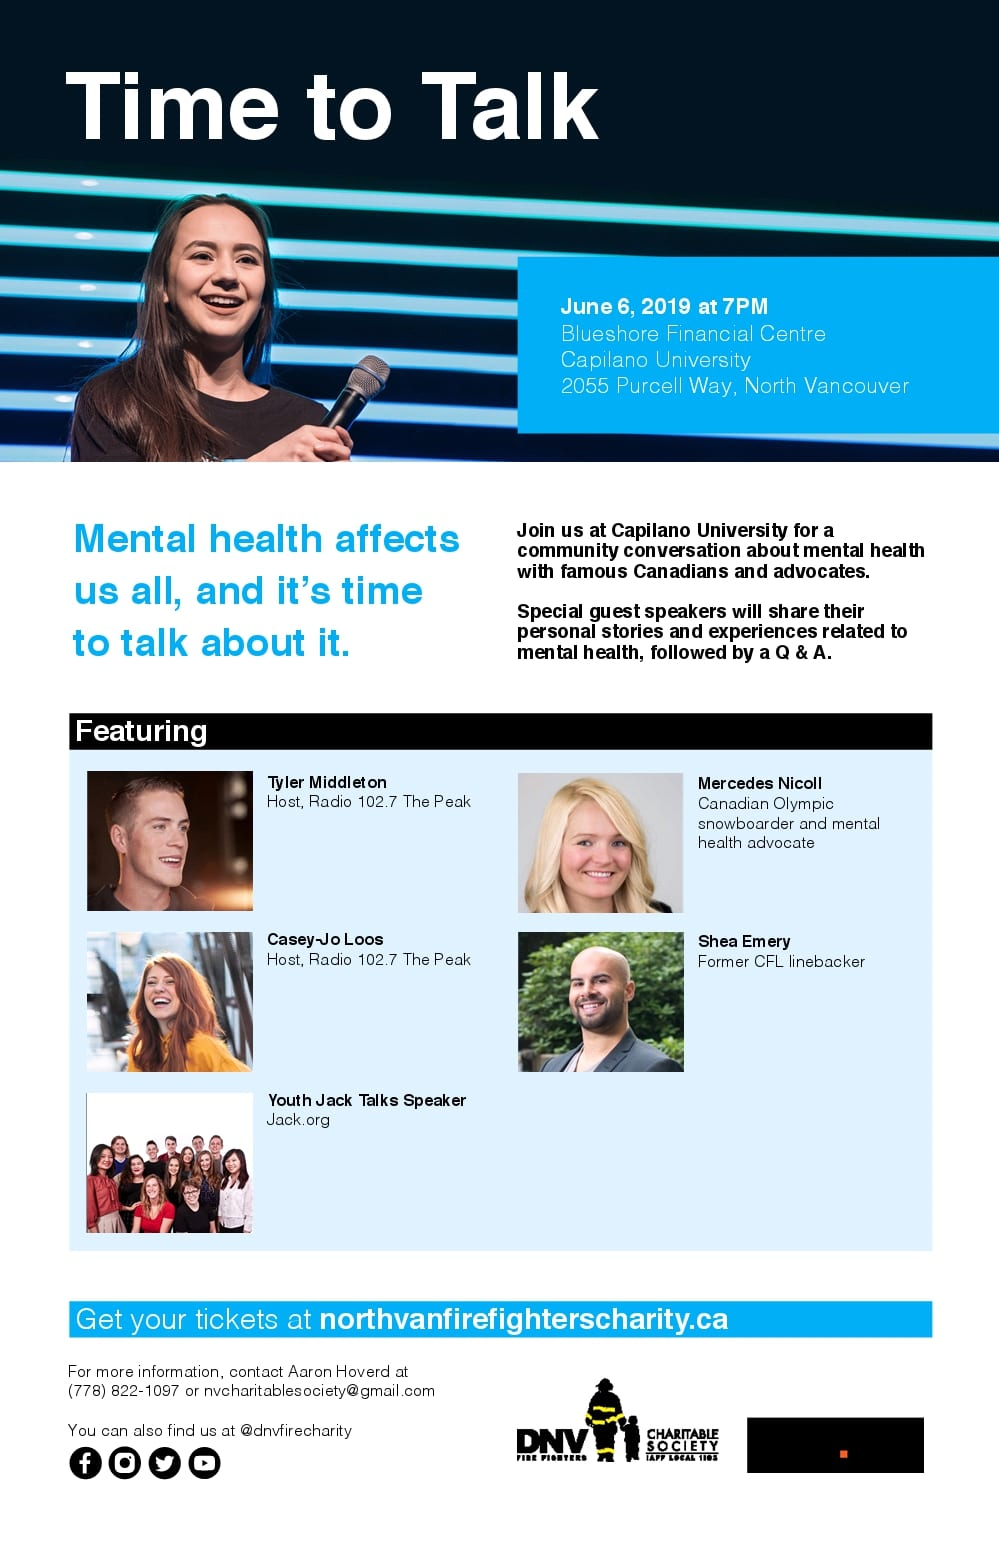 Time to Talk – A community conversation about mental health